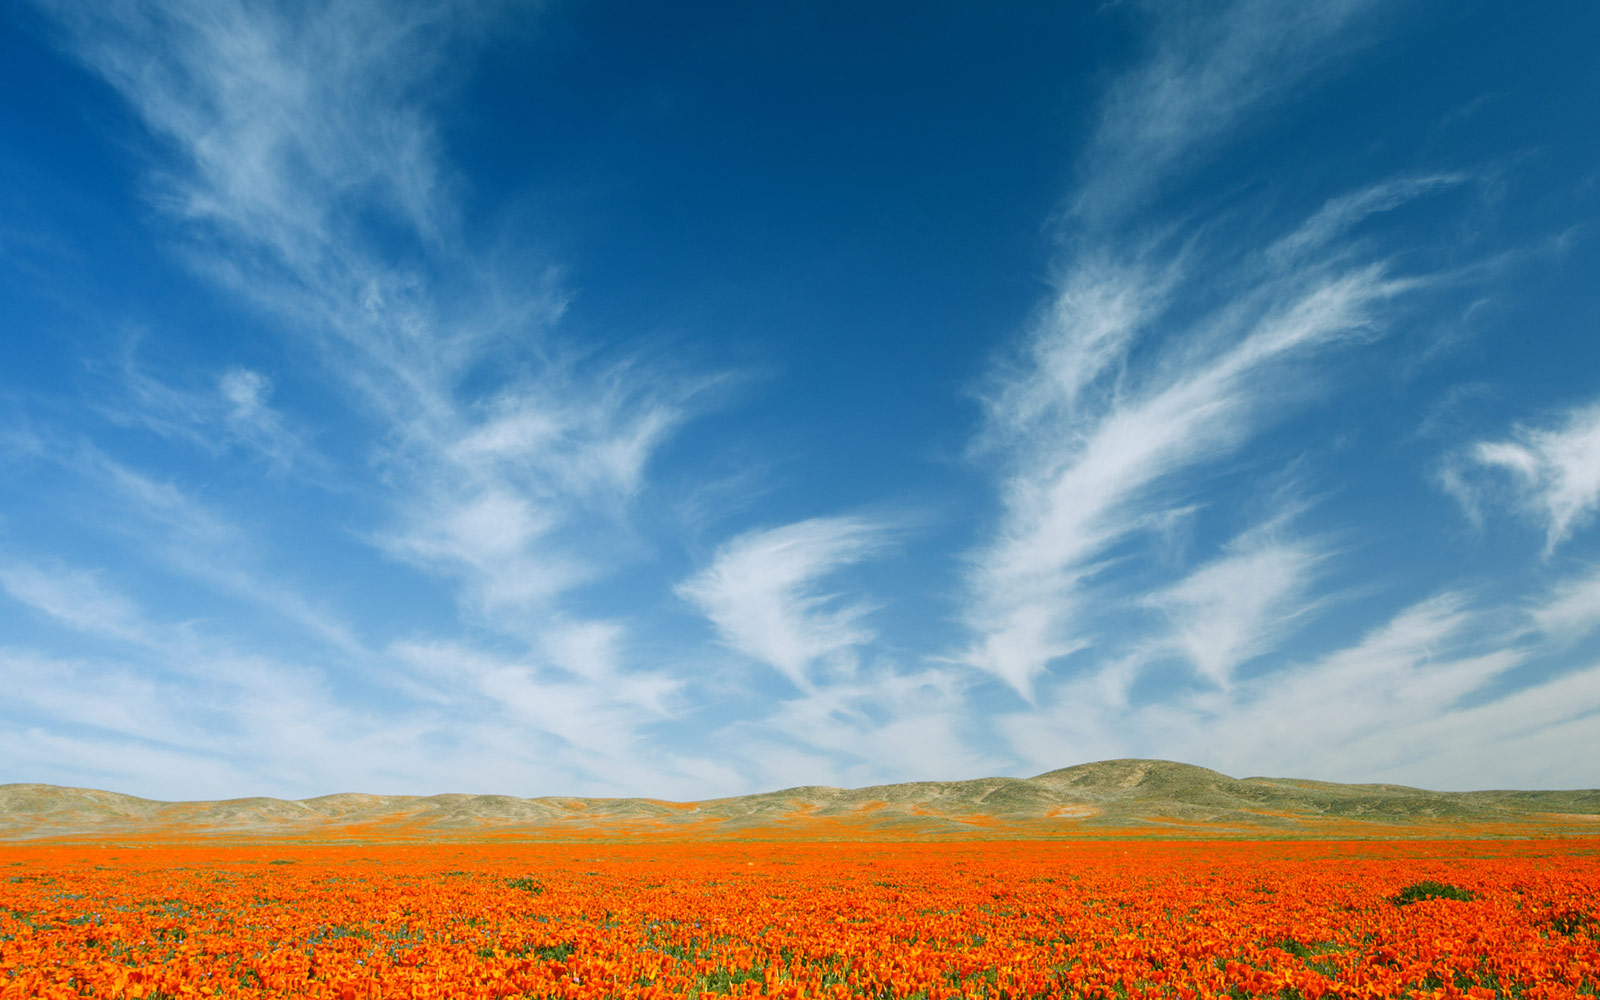 California Poppy Festival, Lancaster, California